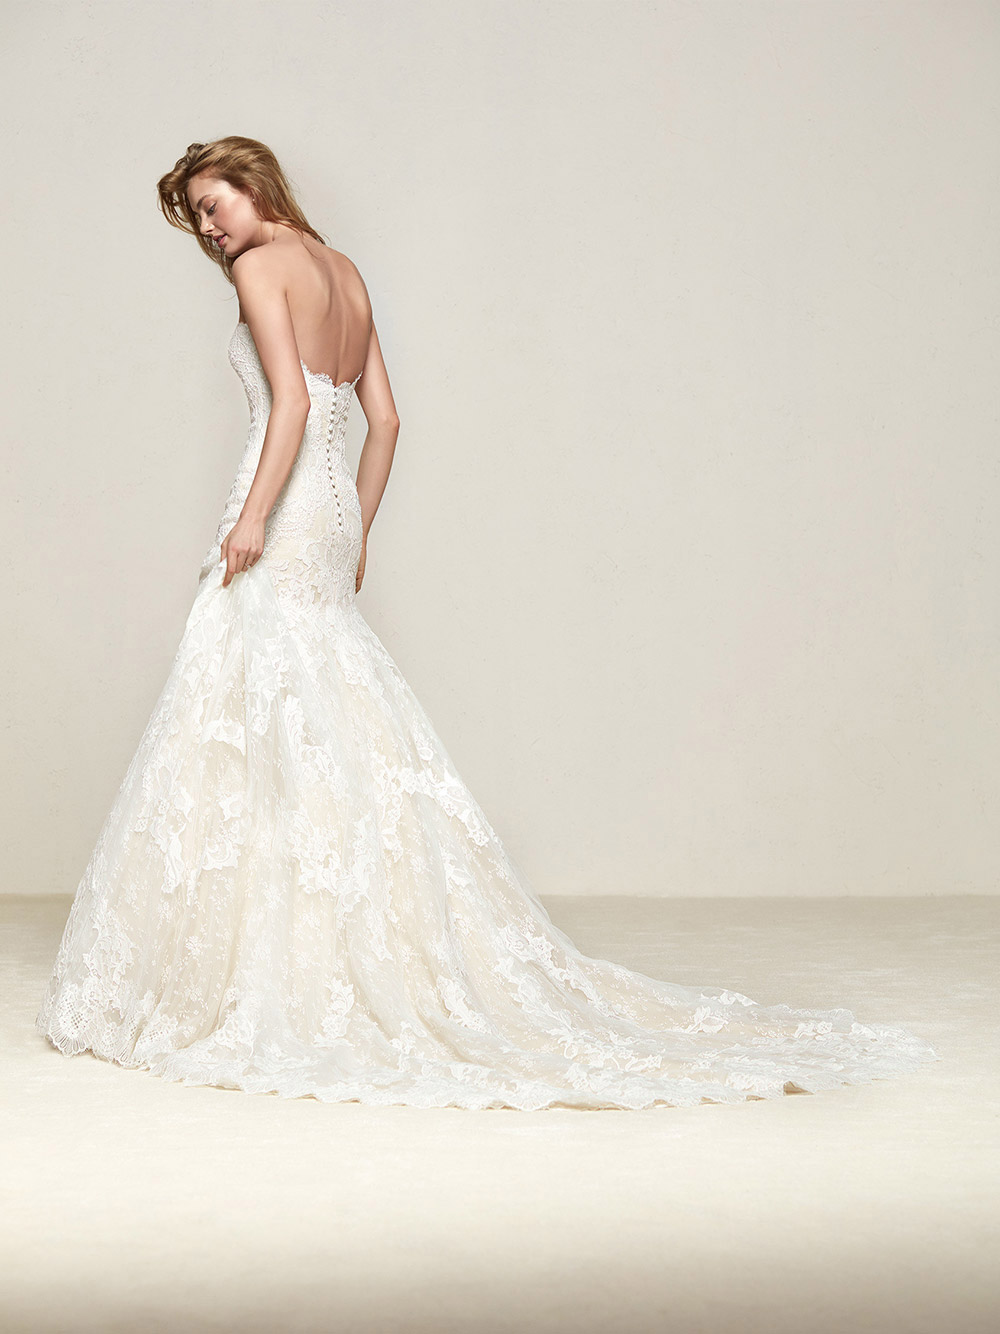 Druida - Pronovias 2018 Bridal Collection. www.theweddingnotebook.com